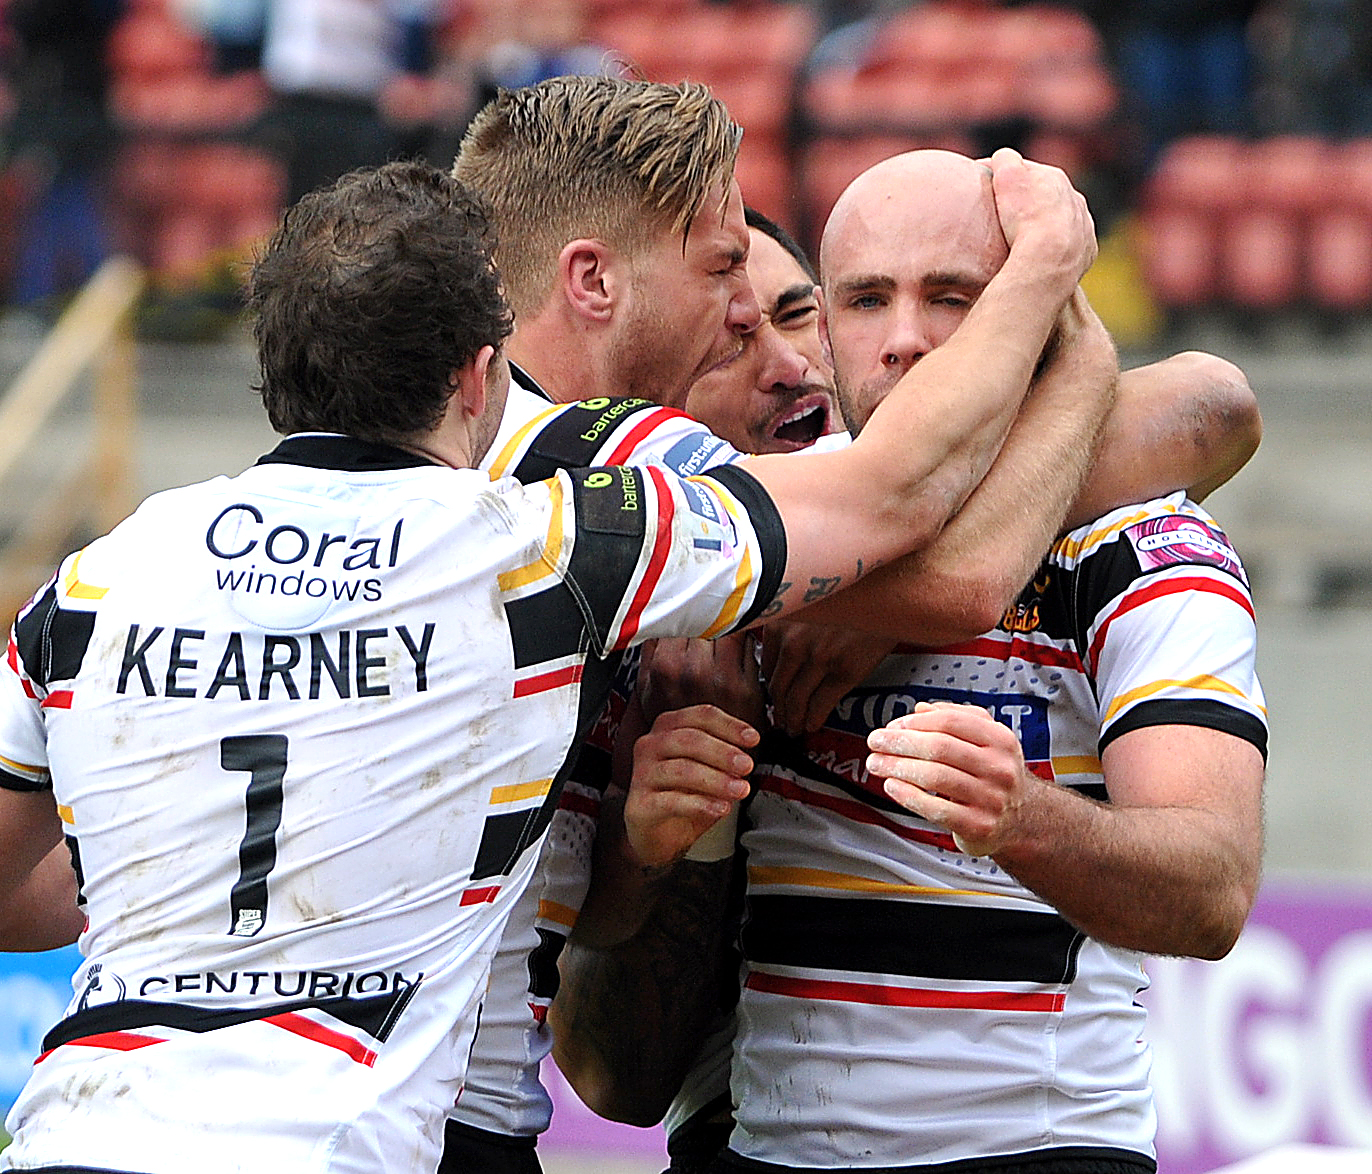 It's Warr! But fans can be our secret weapon in Cup battle, says Bradford Bulls coach